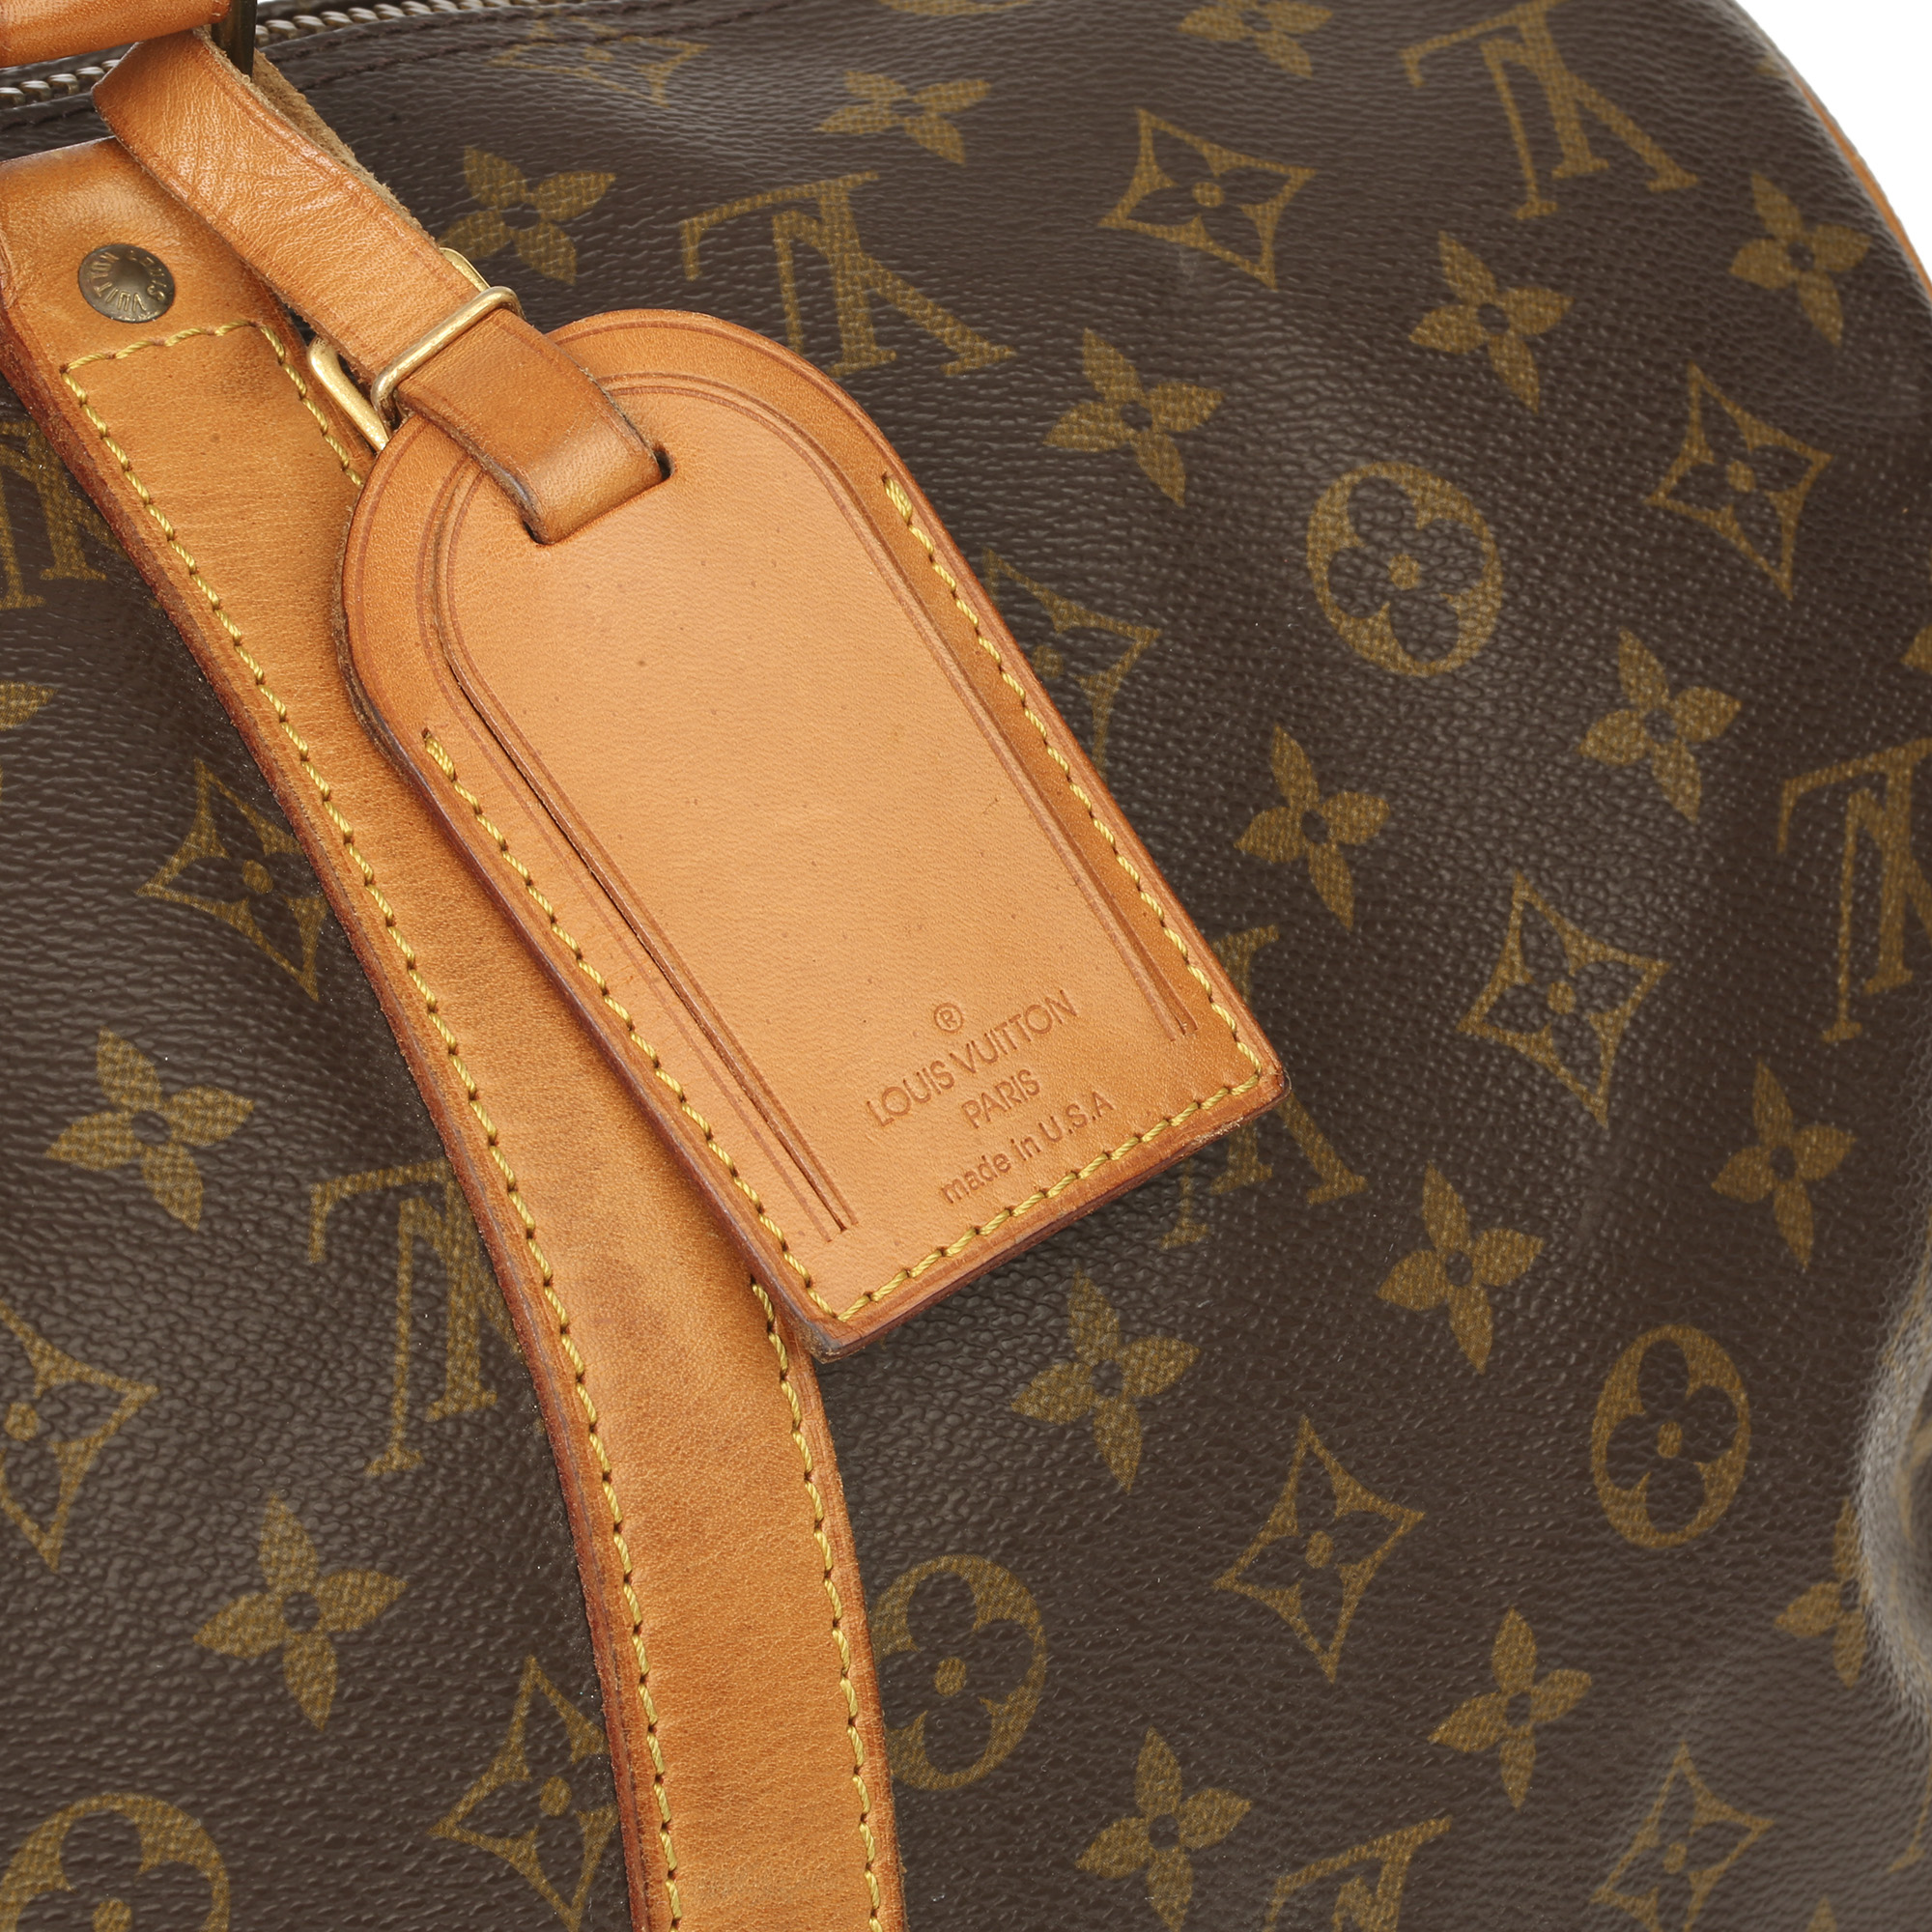 Louis Vuitton Brown Monogram Coated Canvas & Vachetta Leather Vintage Keepall 45 Bandoulire - Image 9 of 13